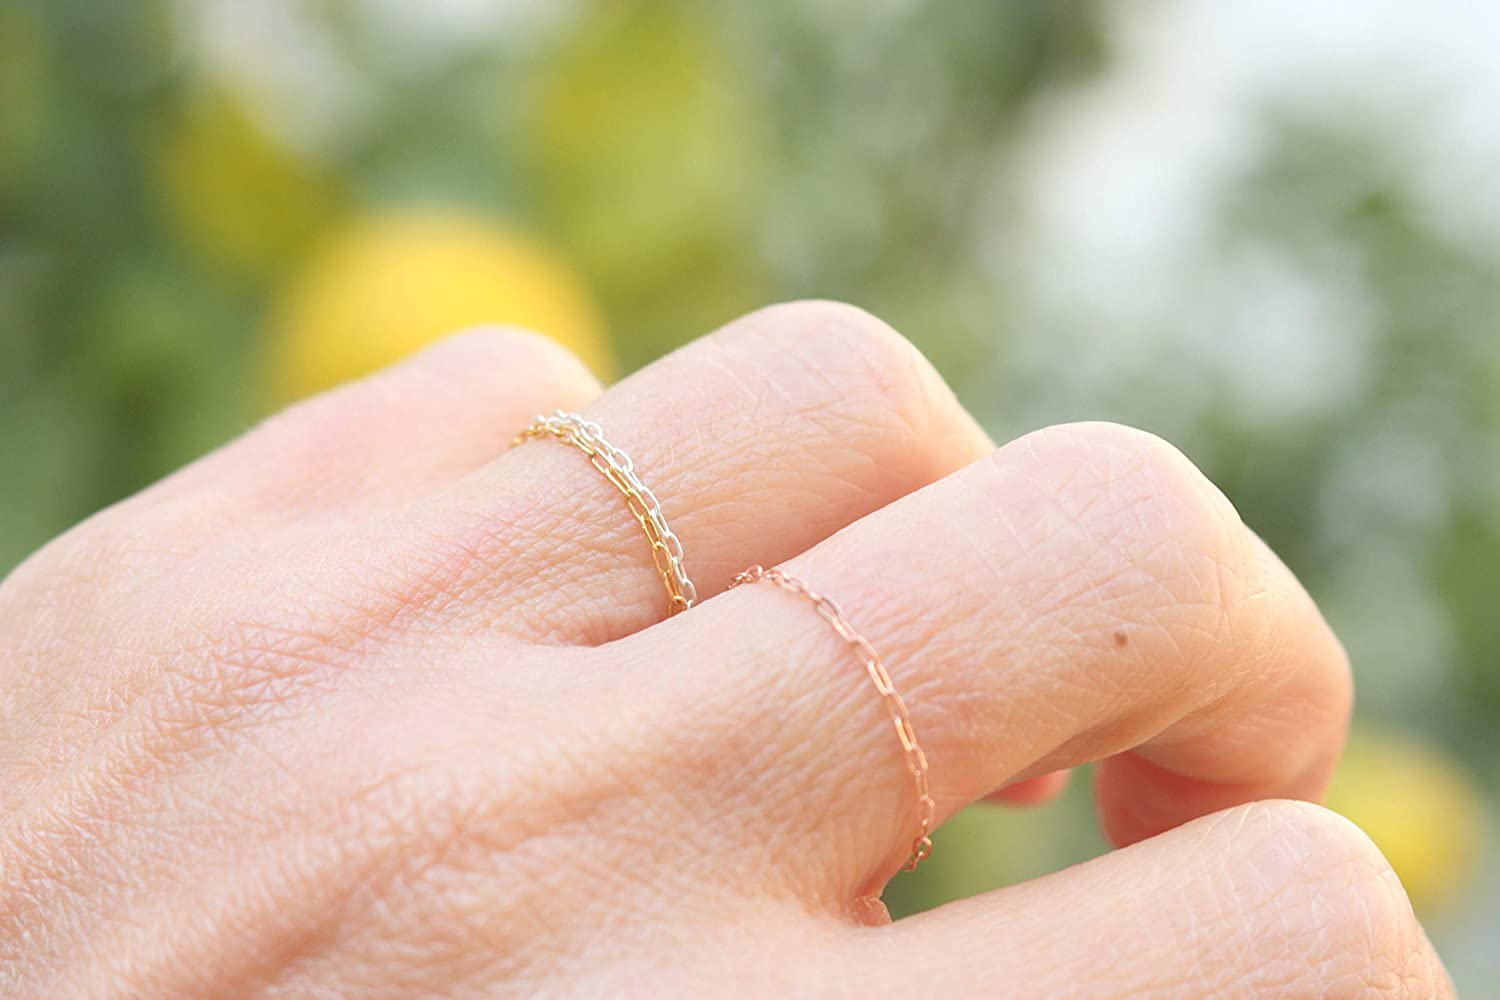 Stacking ring Minimalist jewelry Stackable ring Engagement ring 14k Solid Gold Dainty Gold ring Delicate ring Minimalist ring